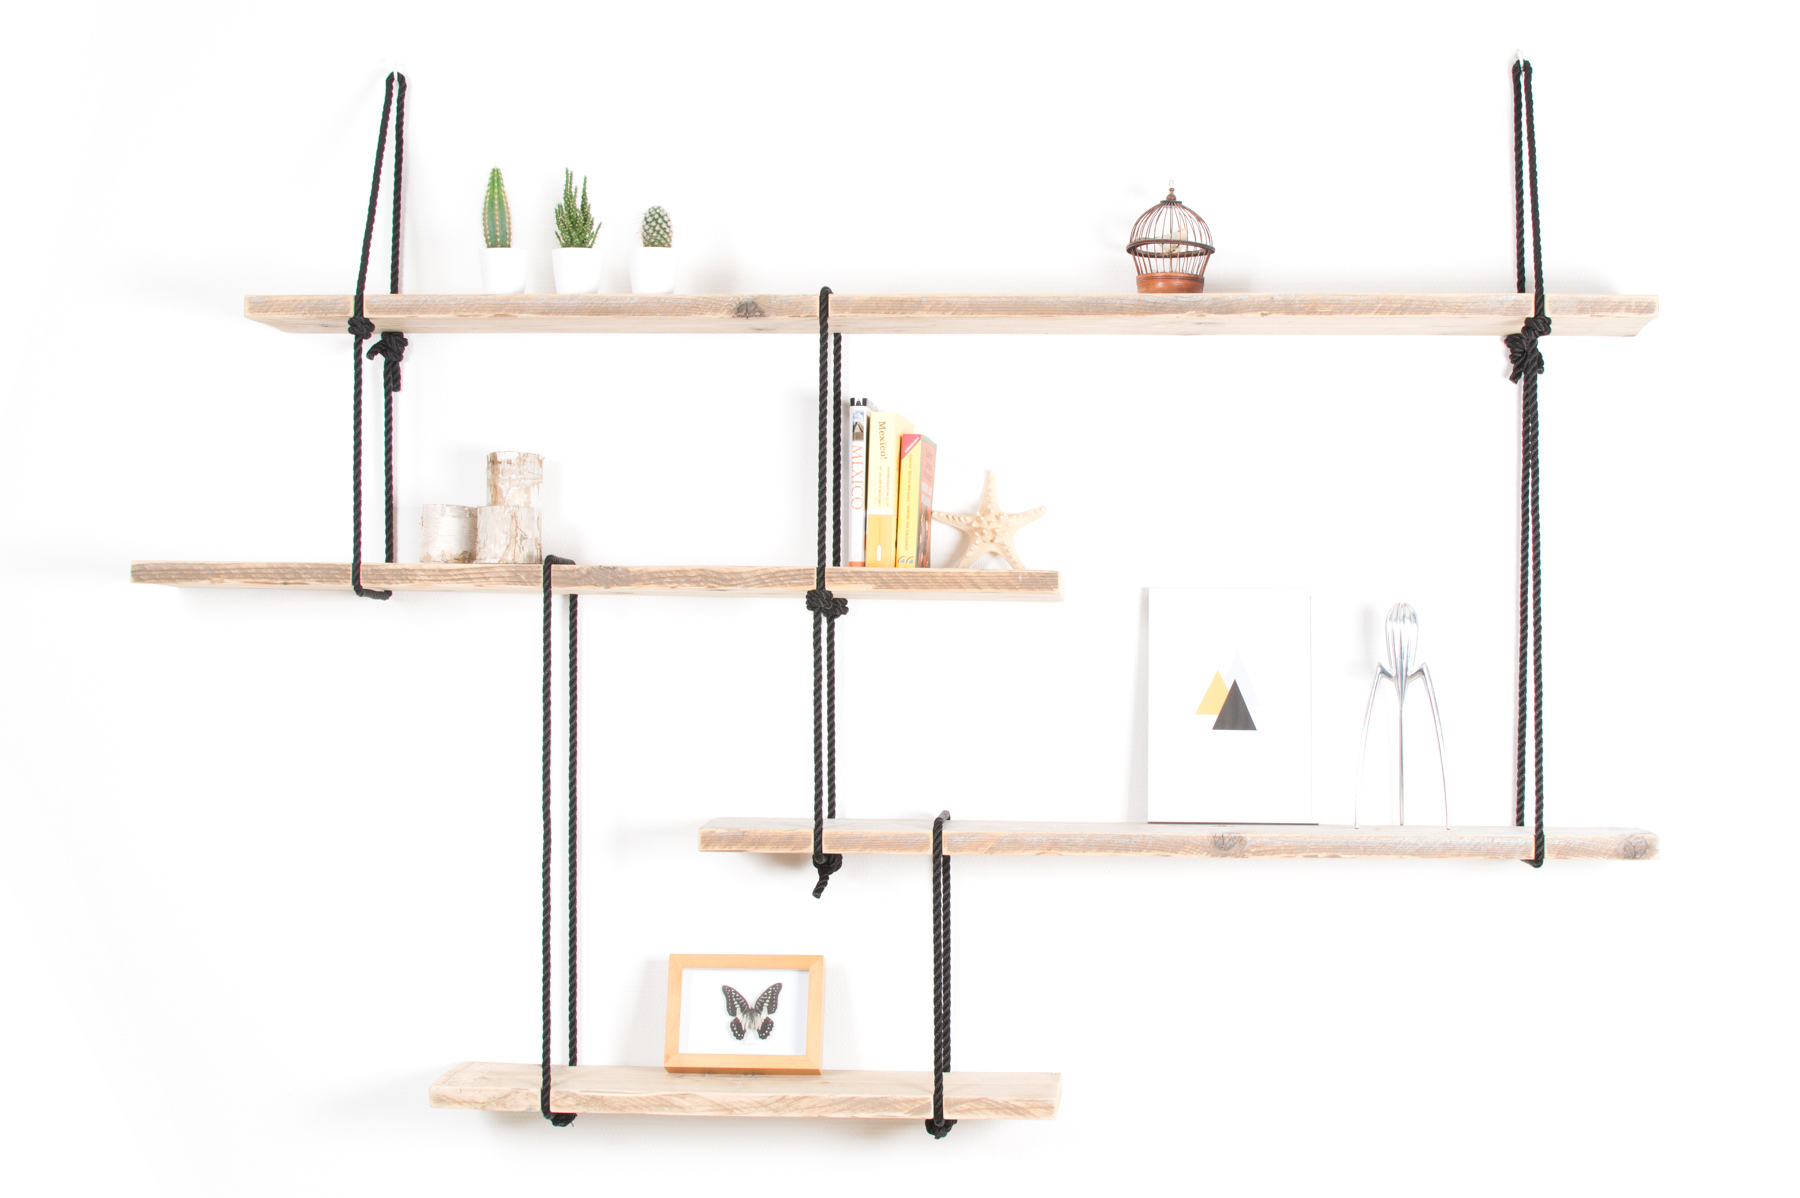 Luuk van Vliet | Rope Installation | rope and wood shelving, handmade  and designed in the Netherlands.